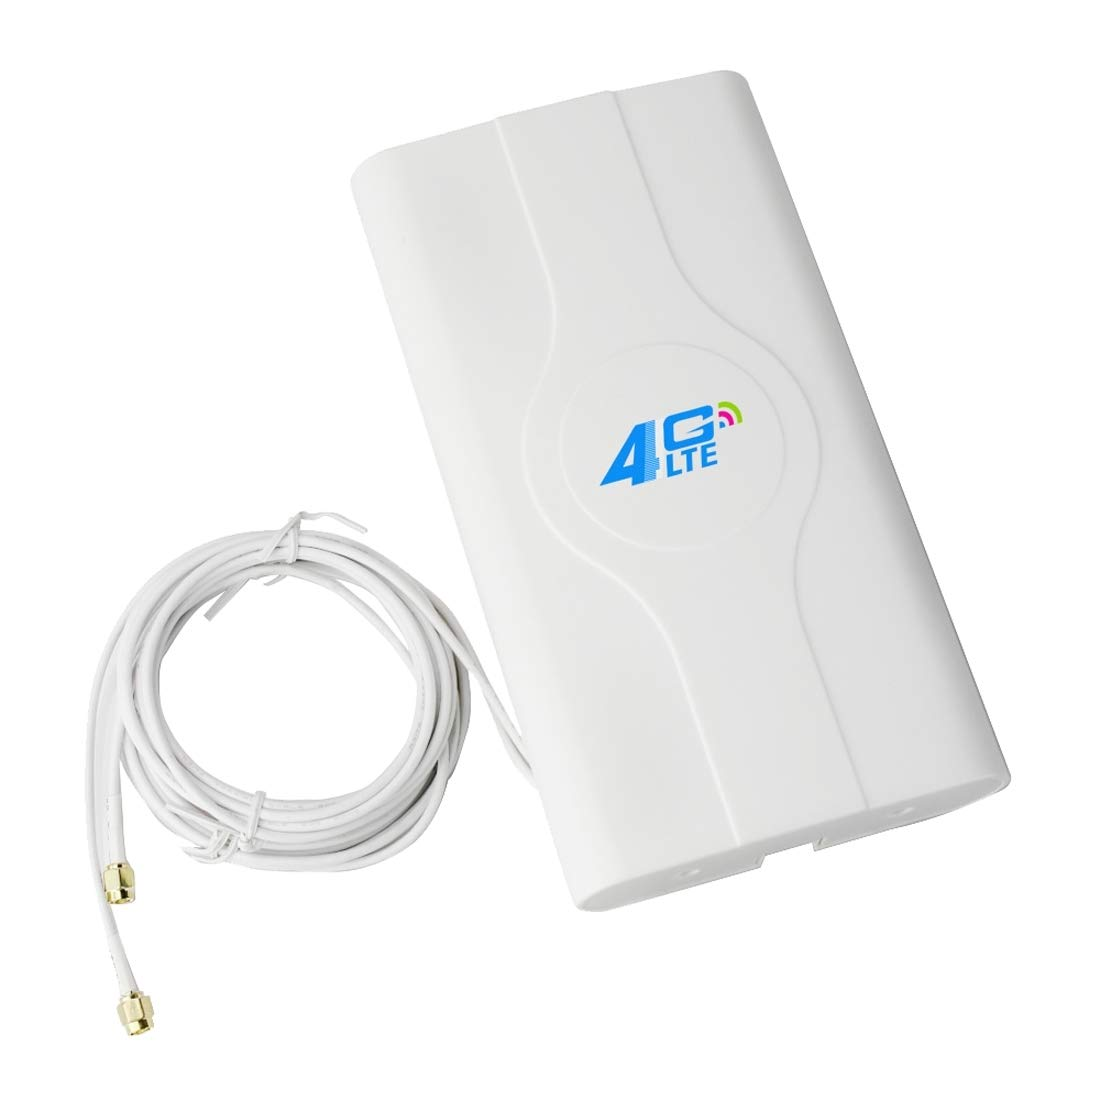 JINYANG Antenna LF-ANT4G01 Indoor 88dBi 4G LTE MIMO Antenna with 2 PCS 2m Connector Wire SMA Port